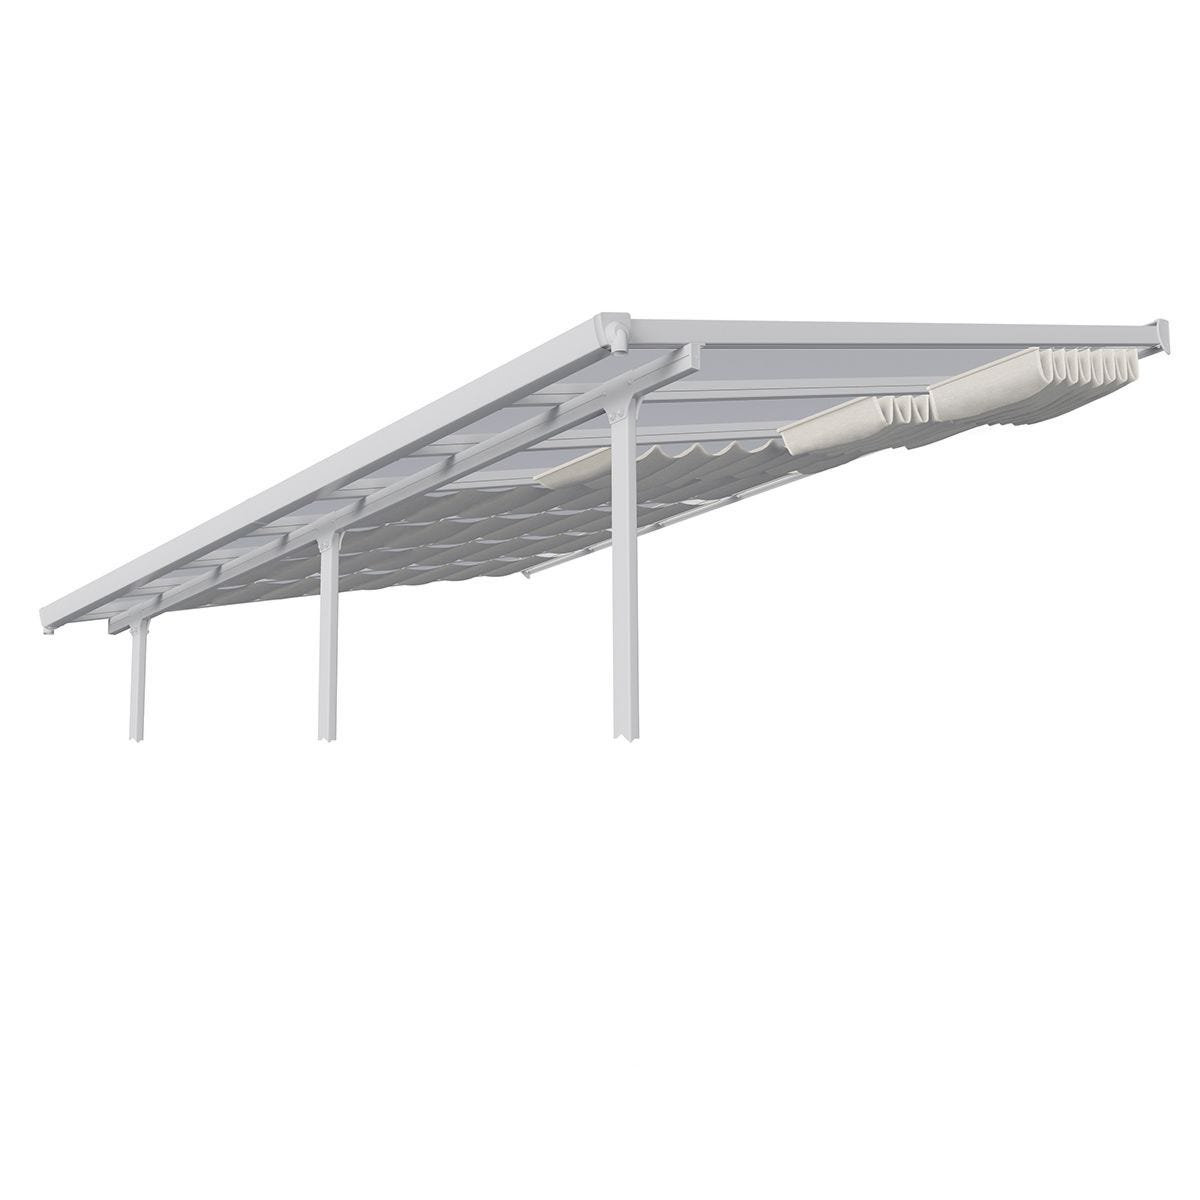 Palram Patio Cover Roof Blinds 3m x 7.3m - White